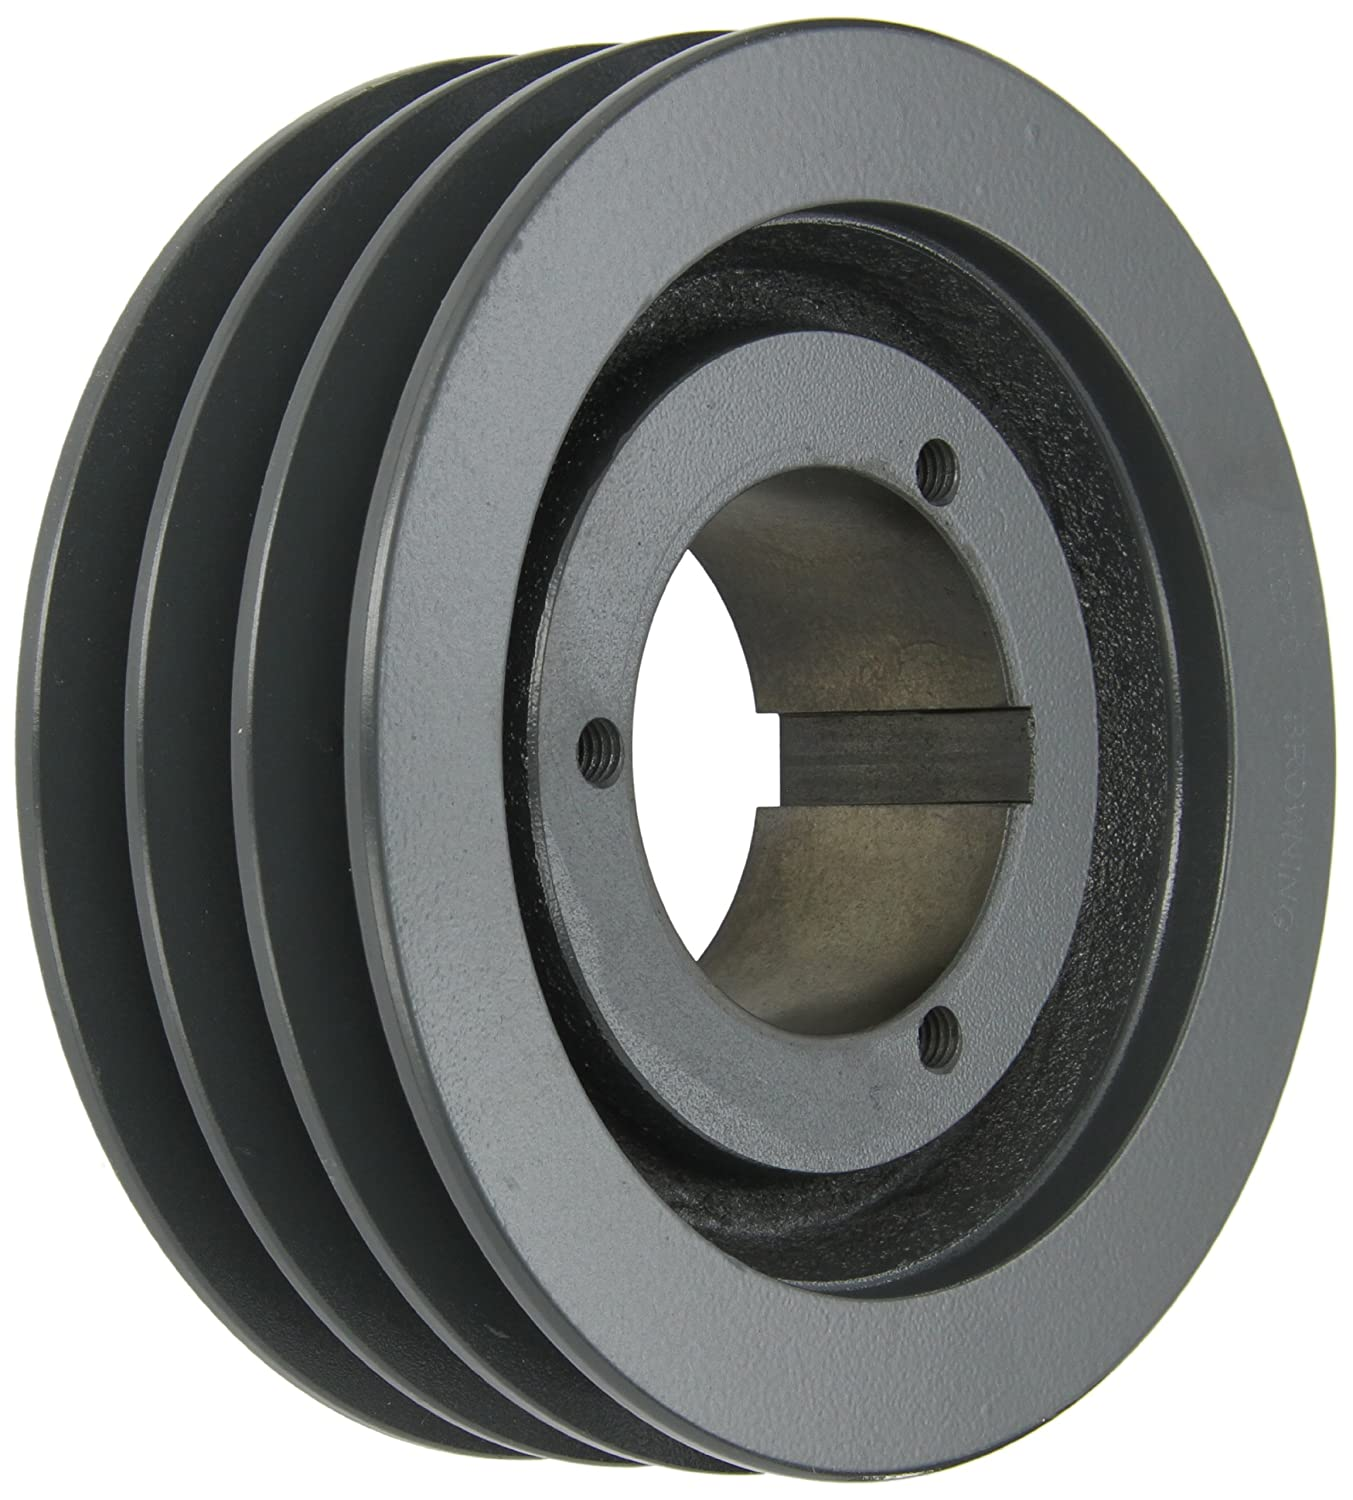 Cast Iron Uses Q1 Bushing Regal 3 Groove A or B Belt Browning 3TB70 Split Taper Sheave